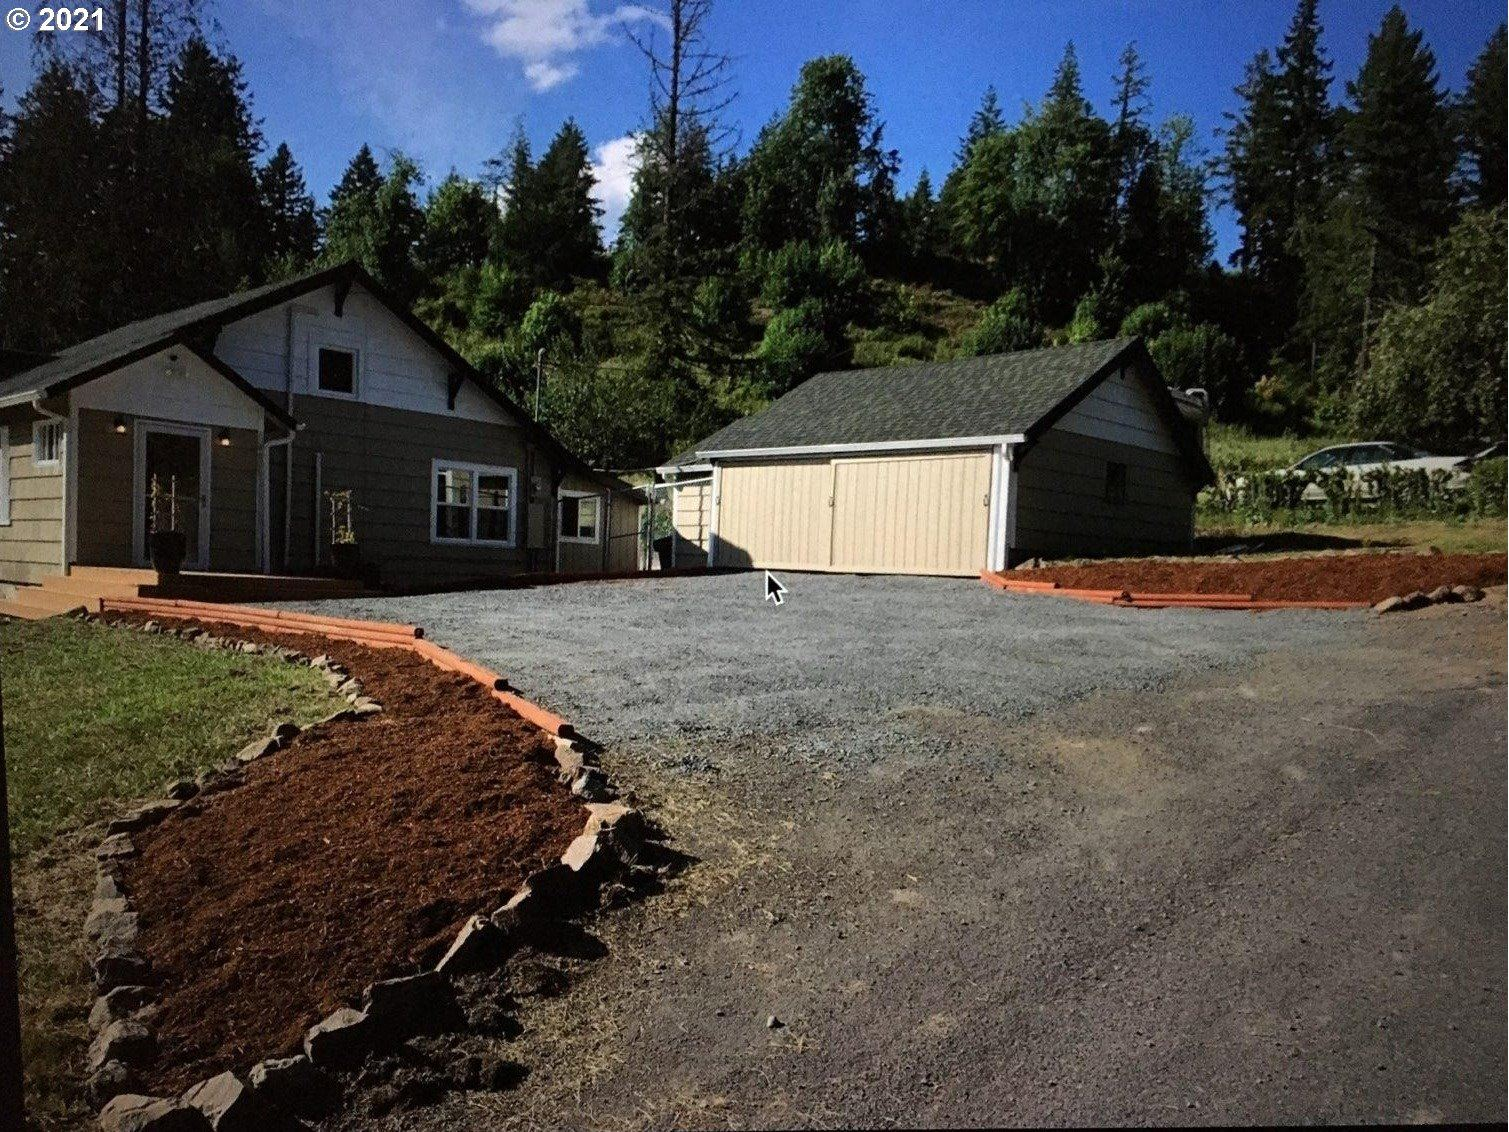 Photo for 111 WITHERBEE RD, Kelso, WA 98626 (MLS # 21628527)